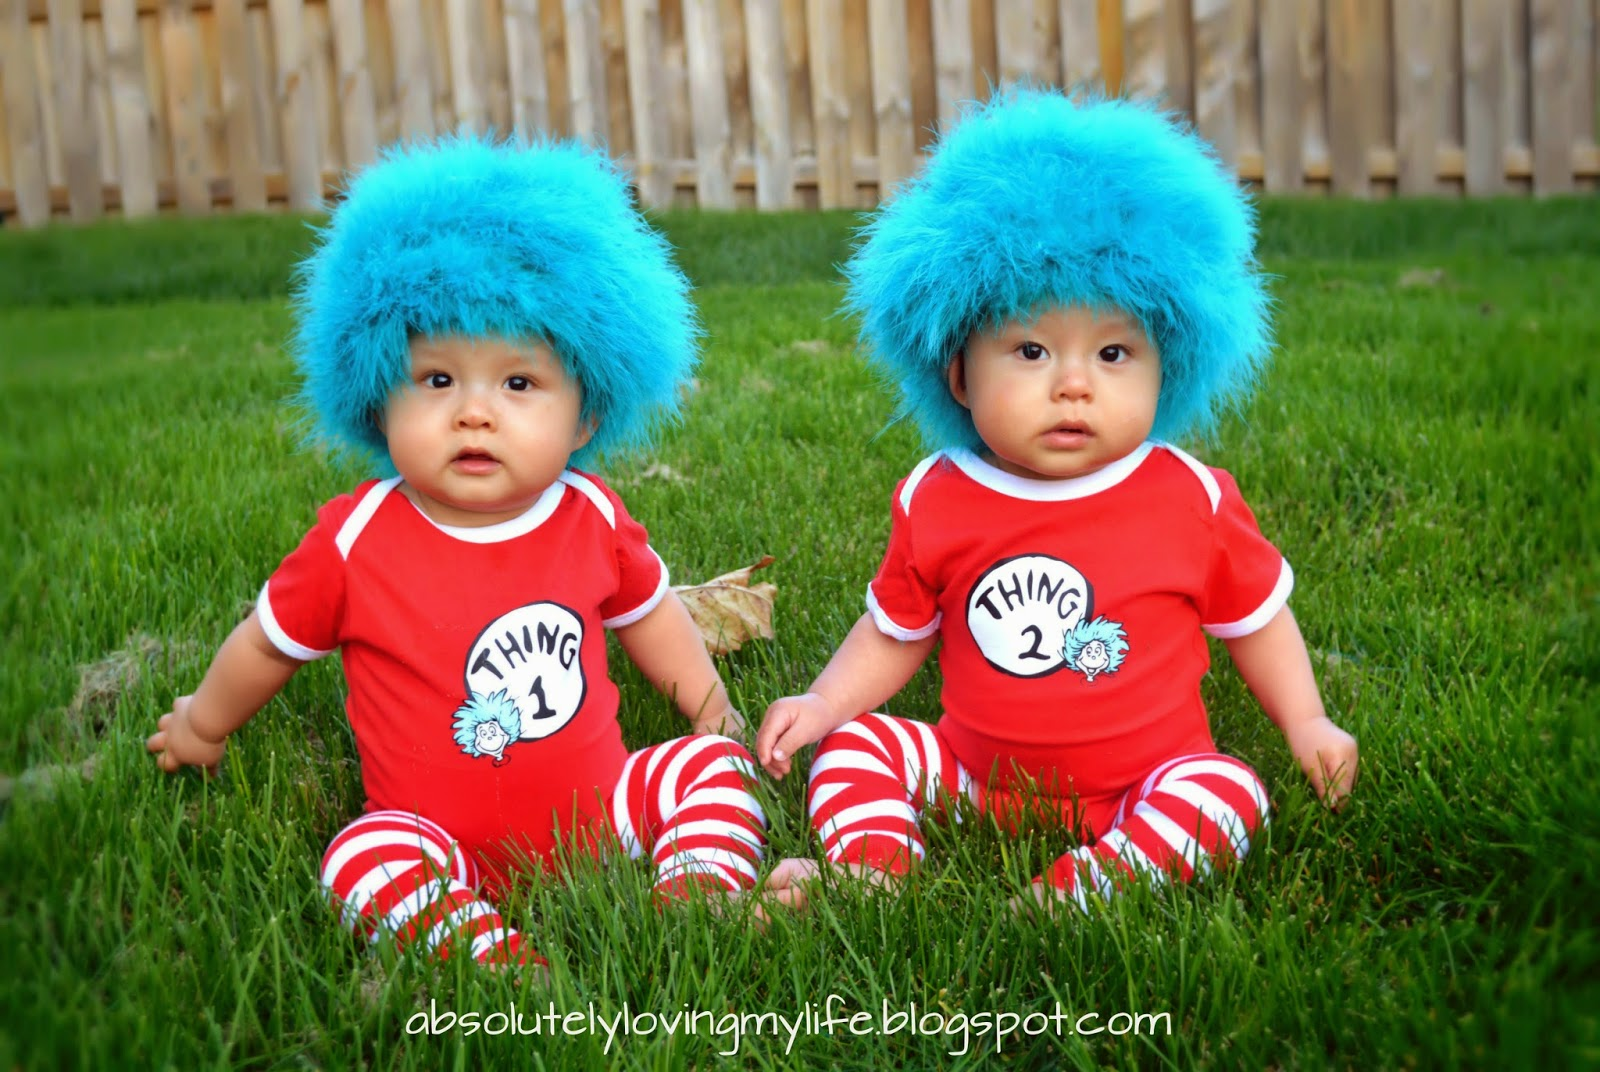 Loving life diy thing 1 and thing 2 baby costumes diy thing 1 and thing 2 baby costumes solutioingenieria Gallery